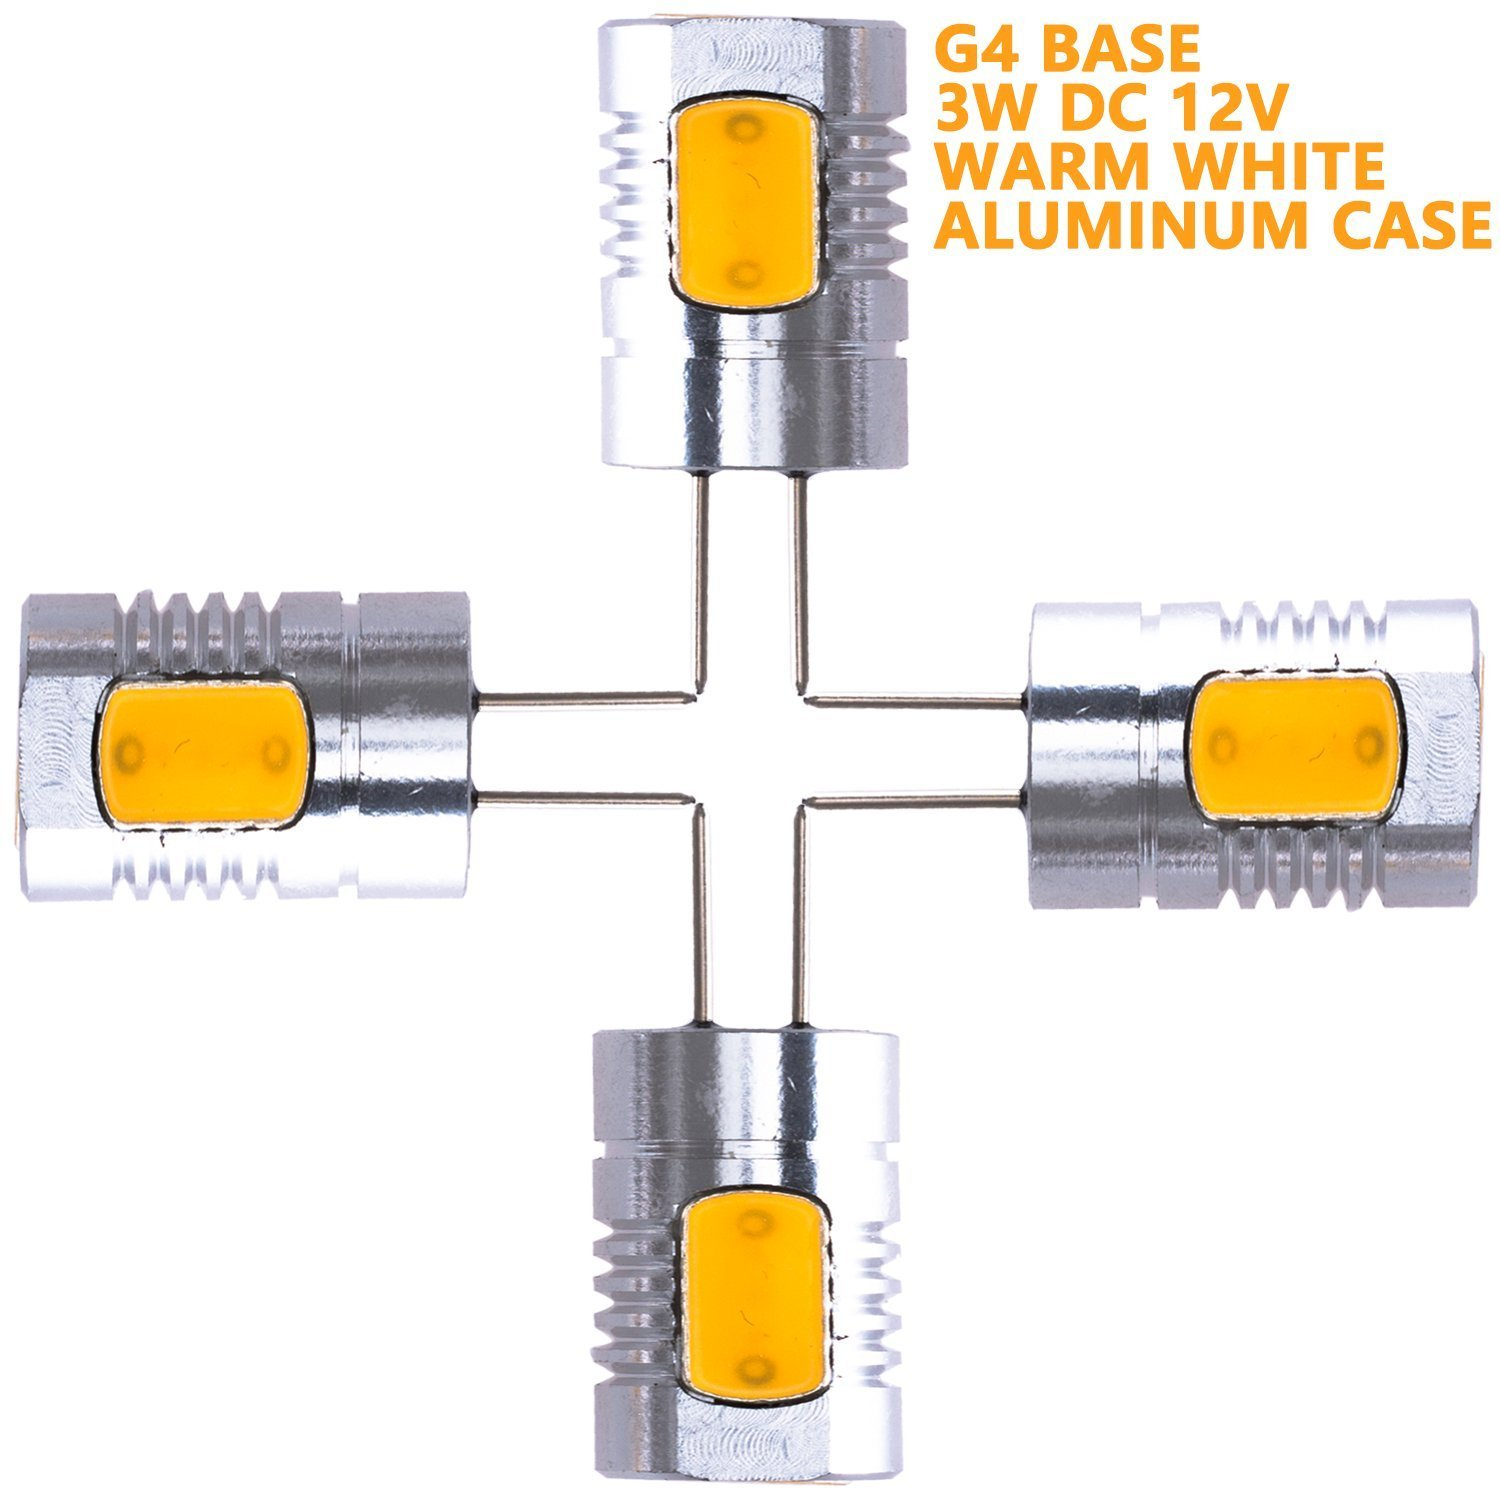 Weanas 4x G4 Base LED Light Bulb Lamp 3 Watt DC 12V Warm White Undimmable Equivalent to 20W Halogen Track Bulb Replacement 80¡ã Beam Angle